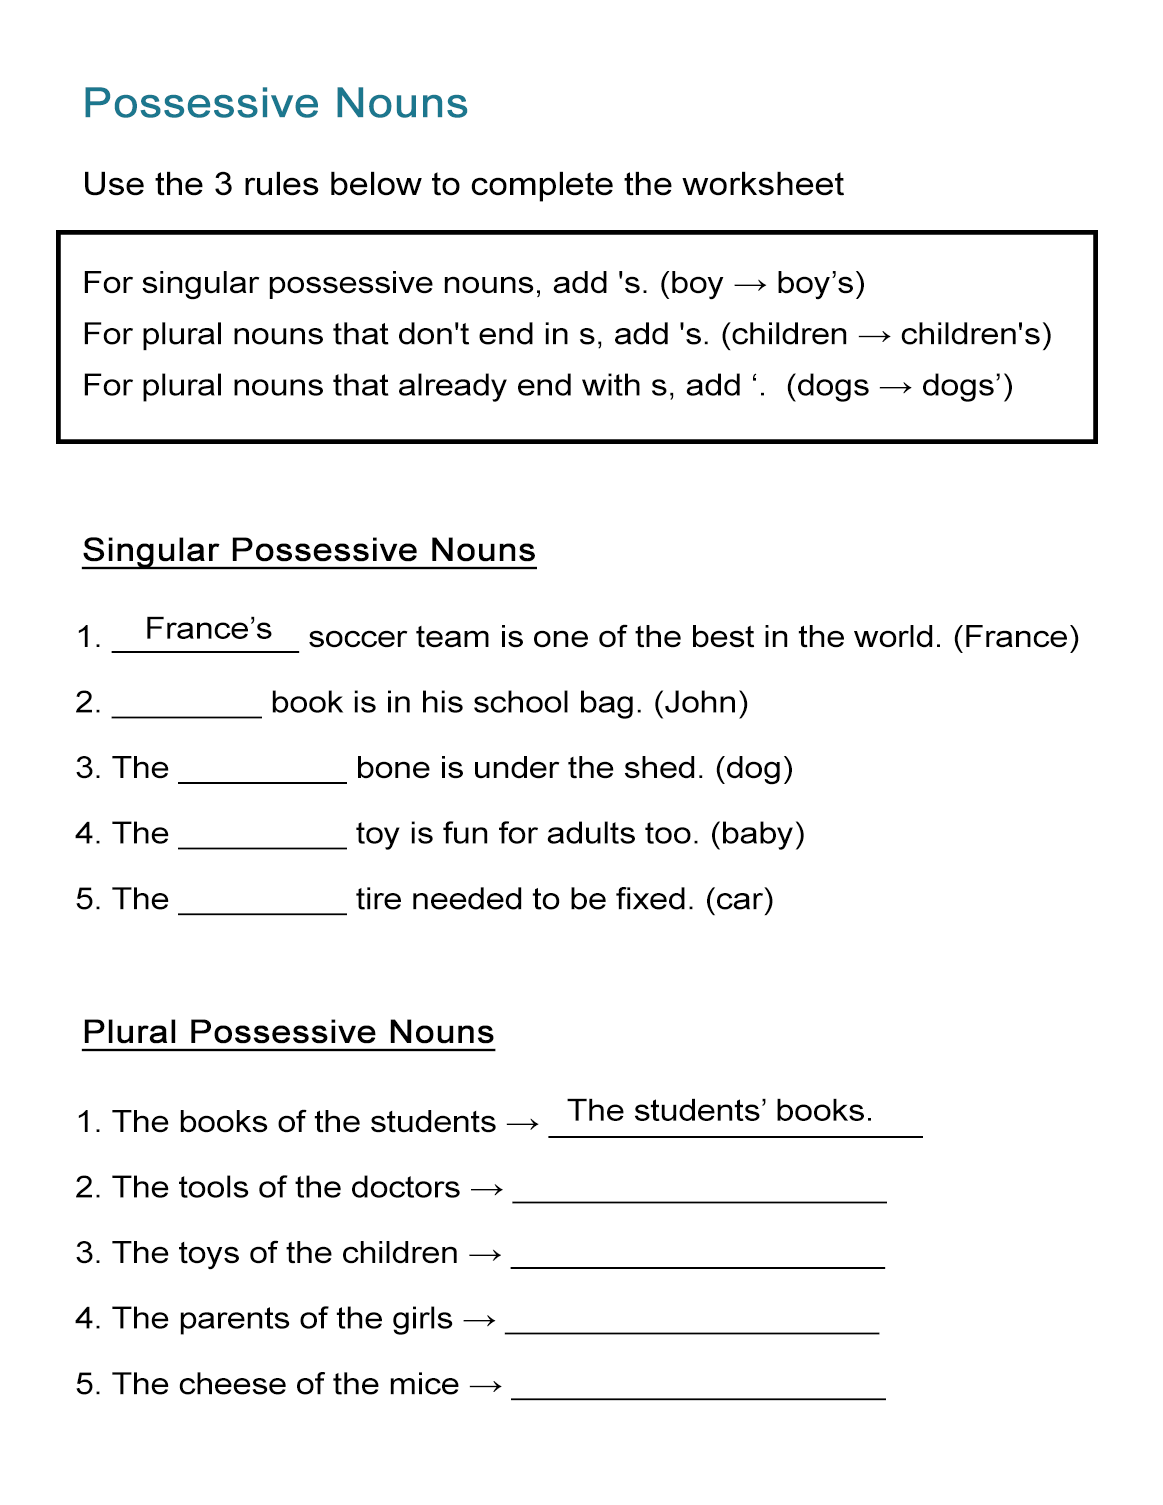 37 Clever Possessive Nouns Worksheets Design With Images